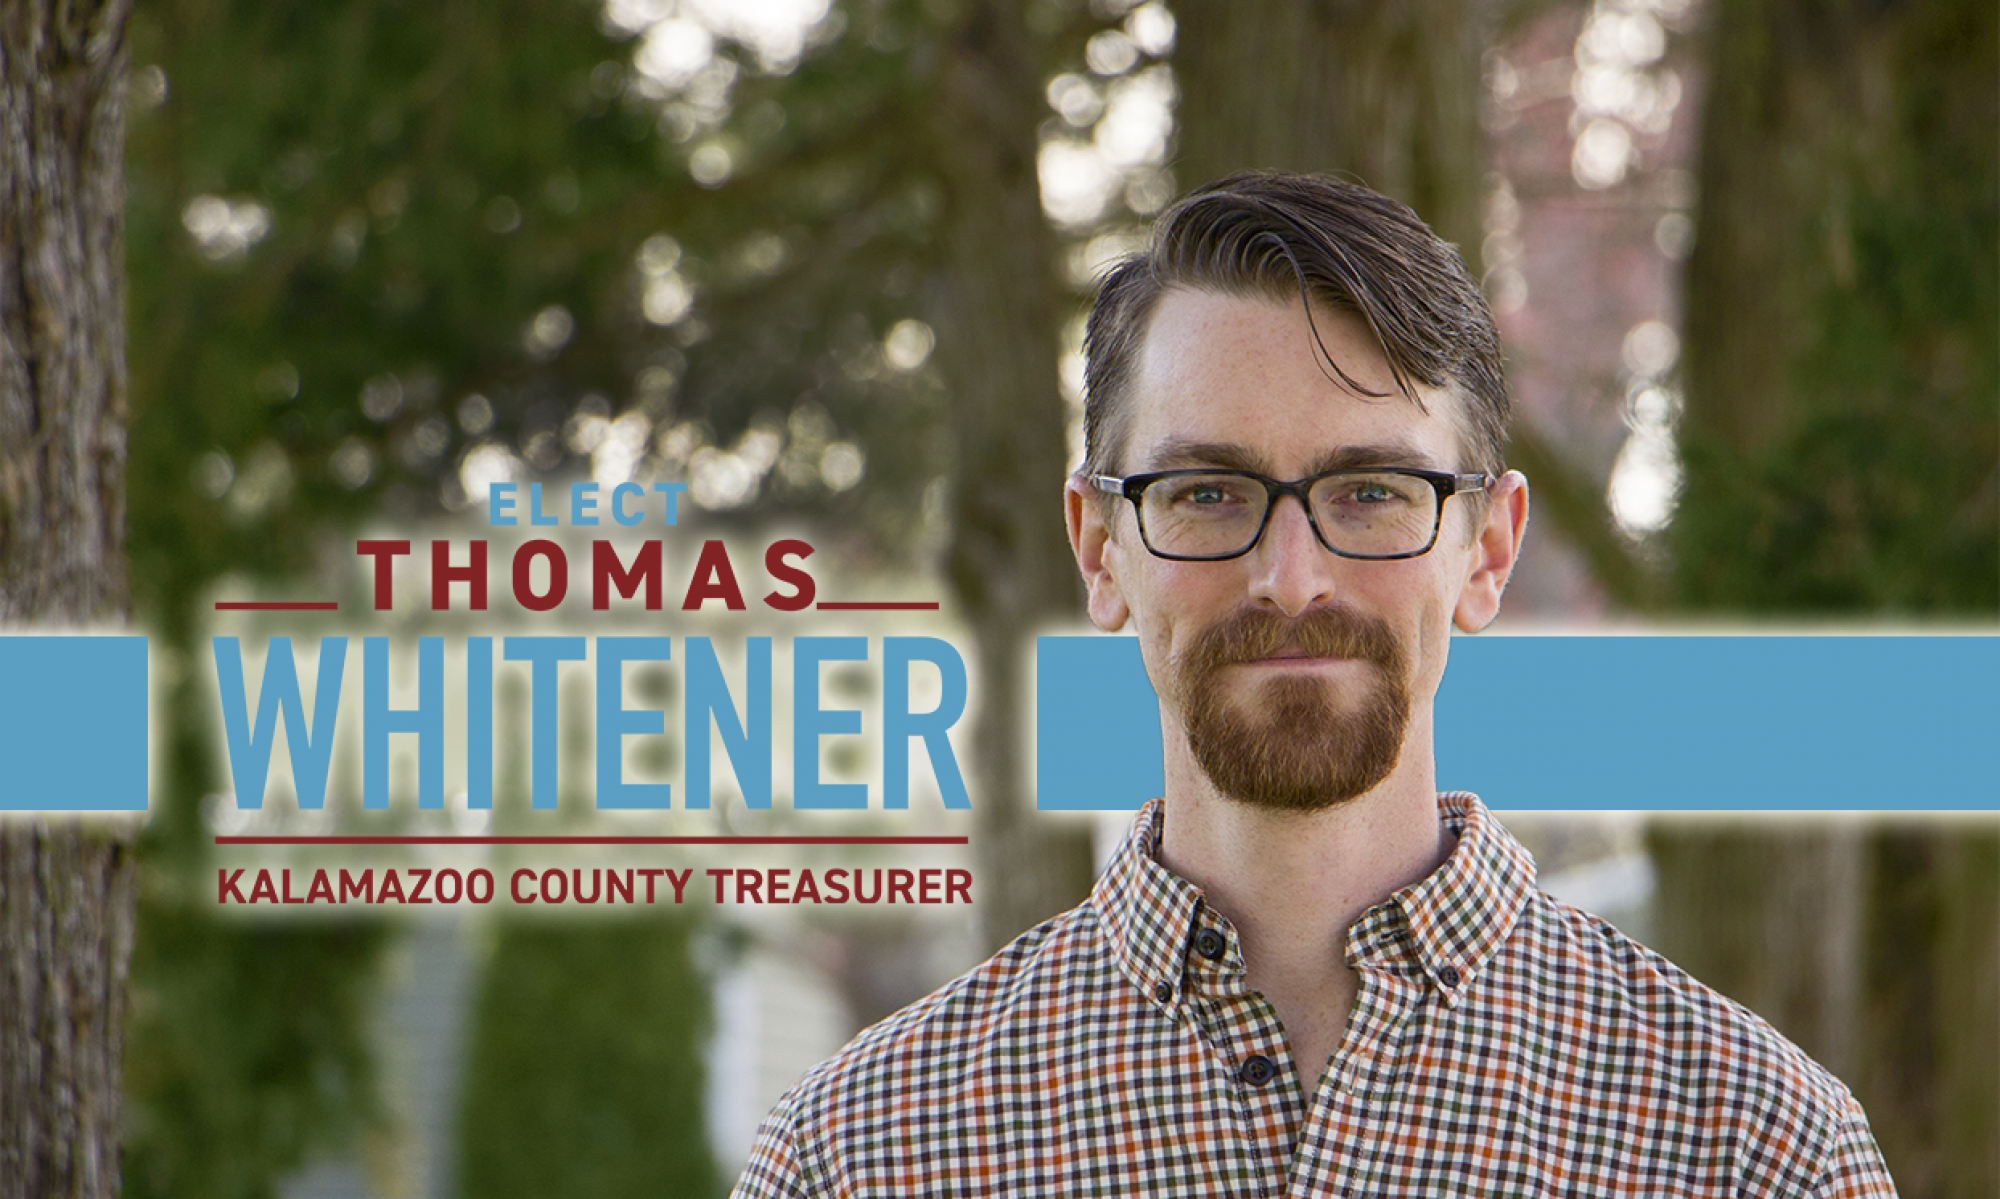 Thomas for Kalamazoo Treasurer